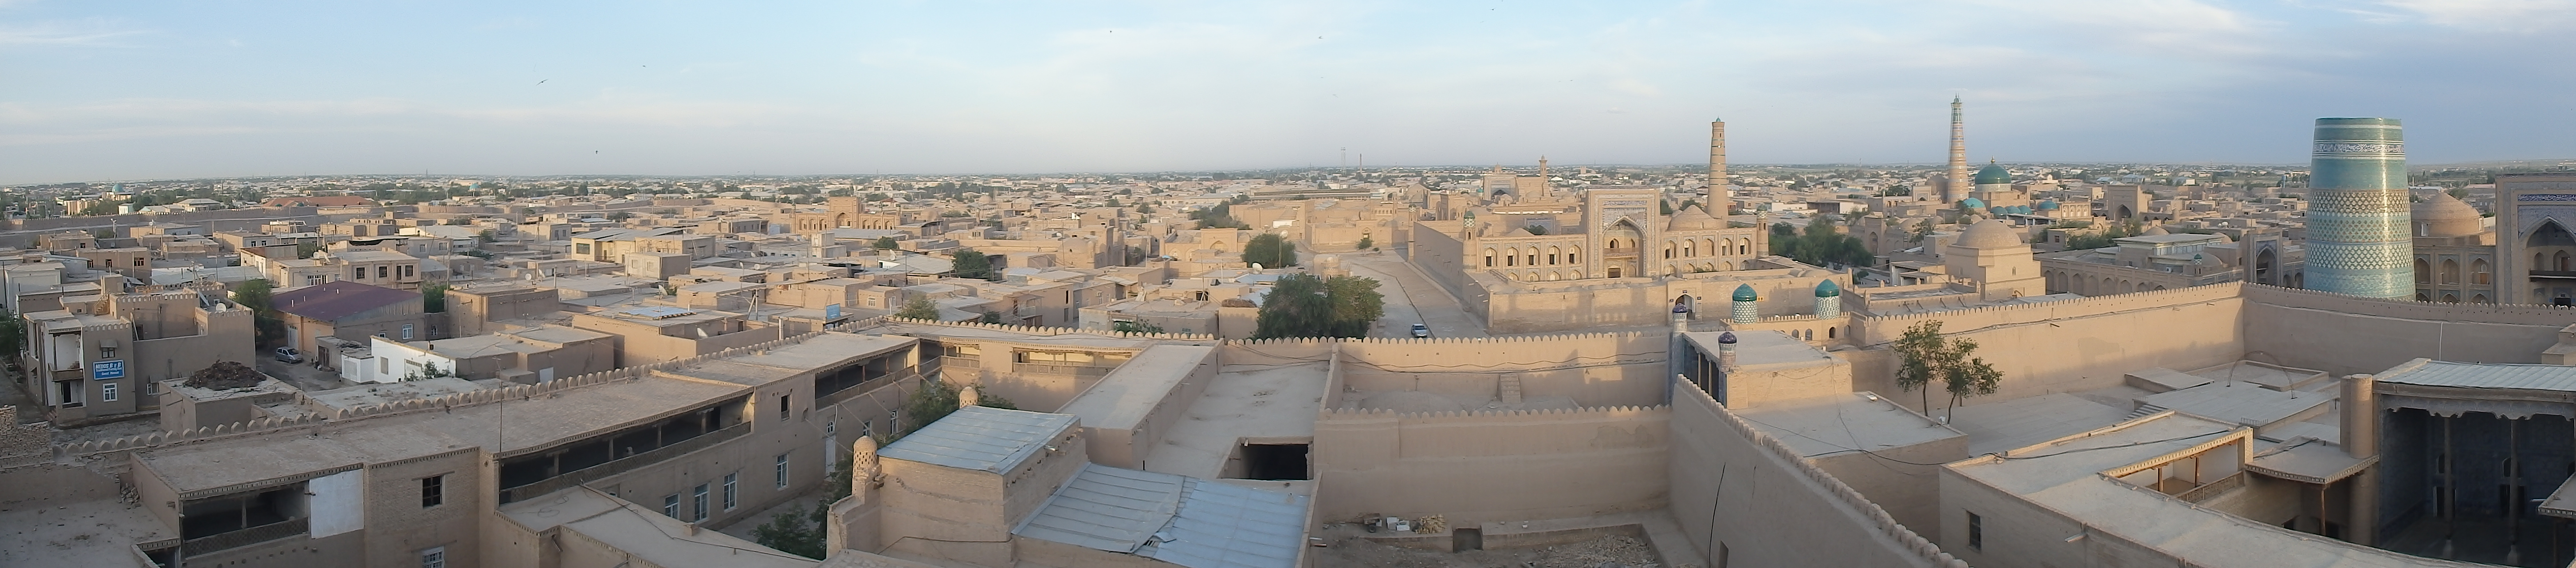 Old Town Khiva